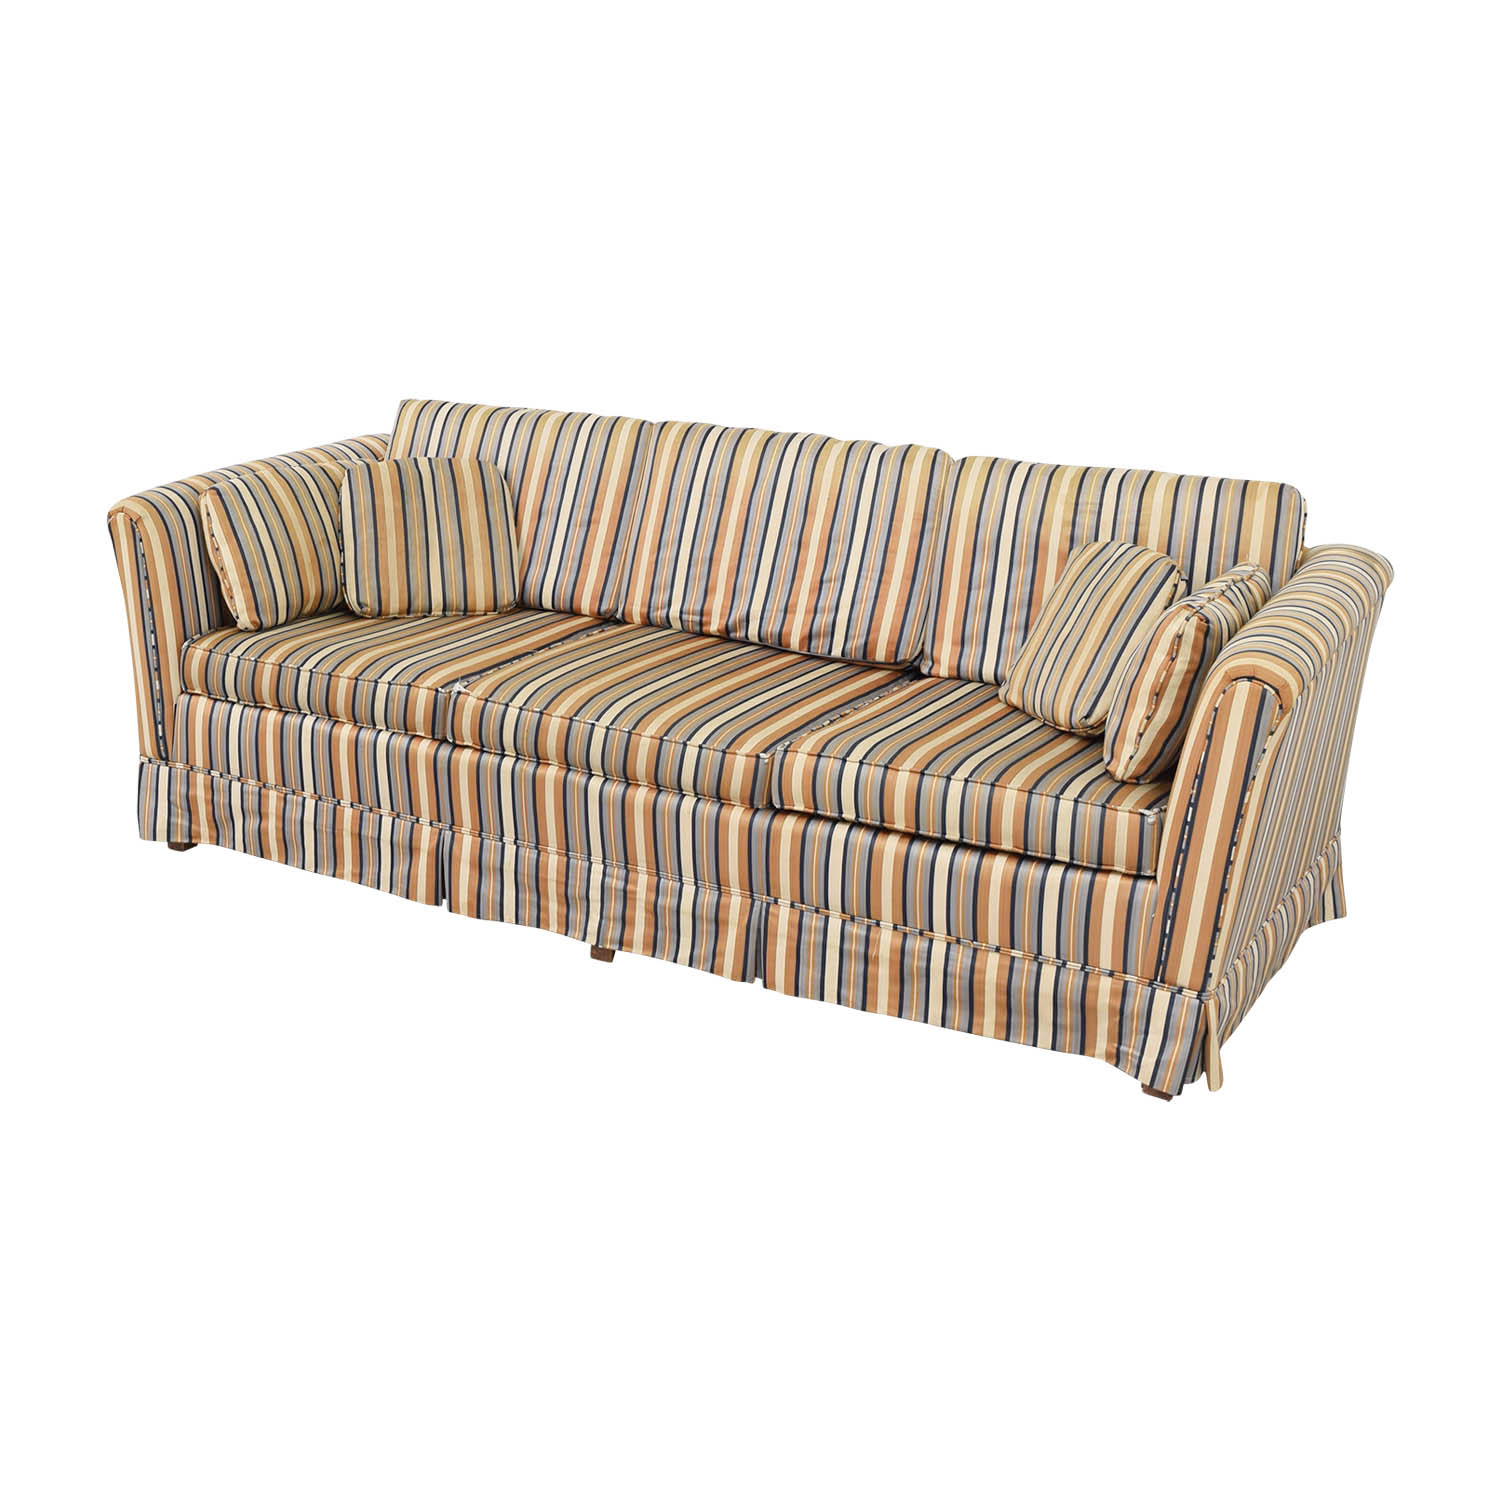 Striped Three-Seater Sofa price